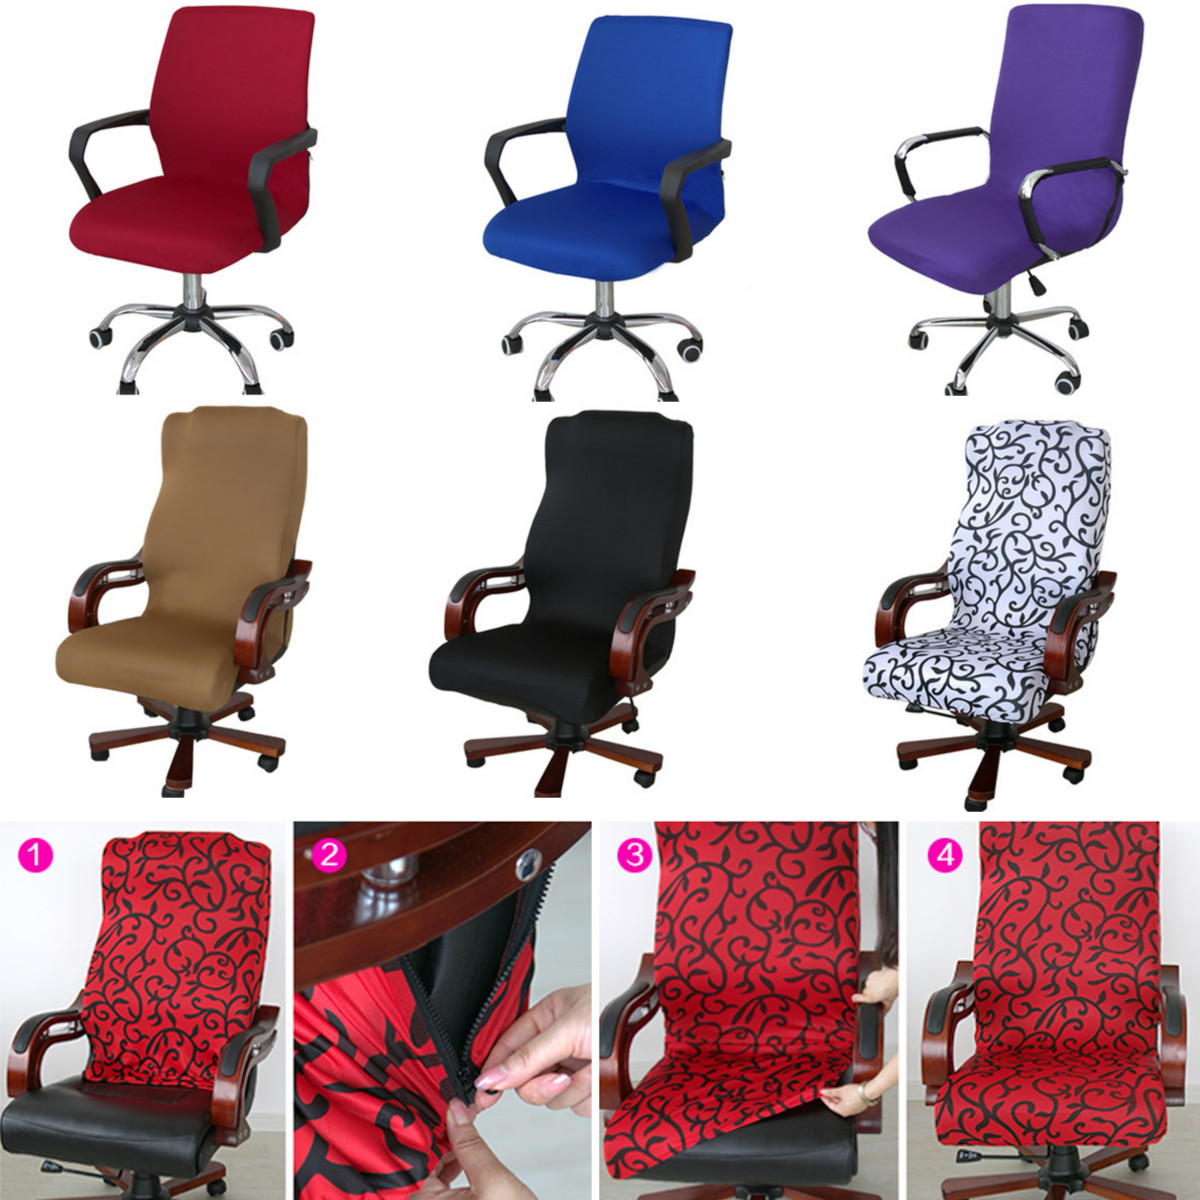 lift chair covers walmart desks and chairs office computer seat cover side zipper design arm protector recouvre chaise stretch rotating decoration